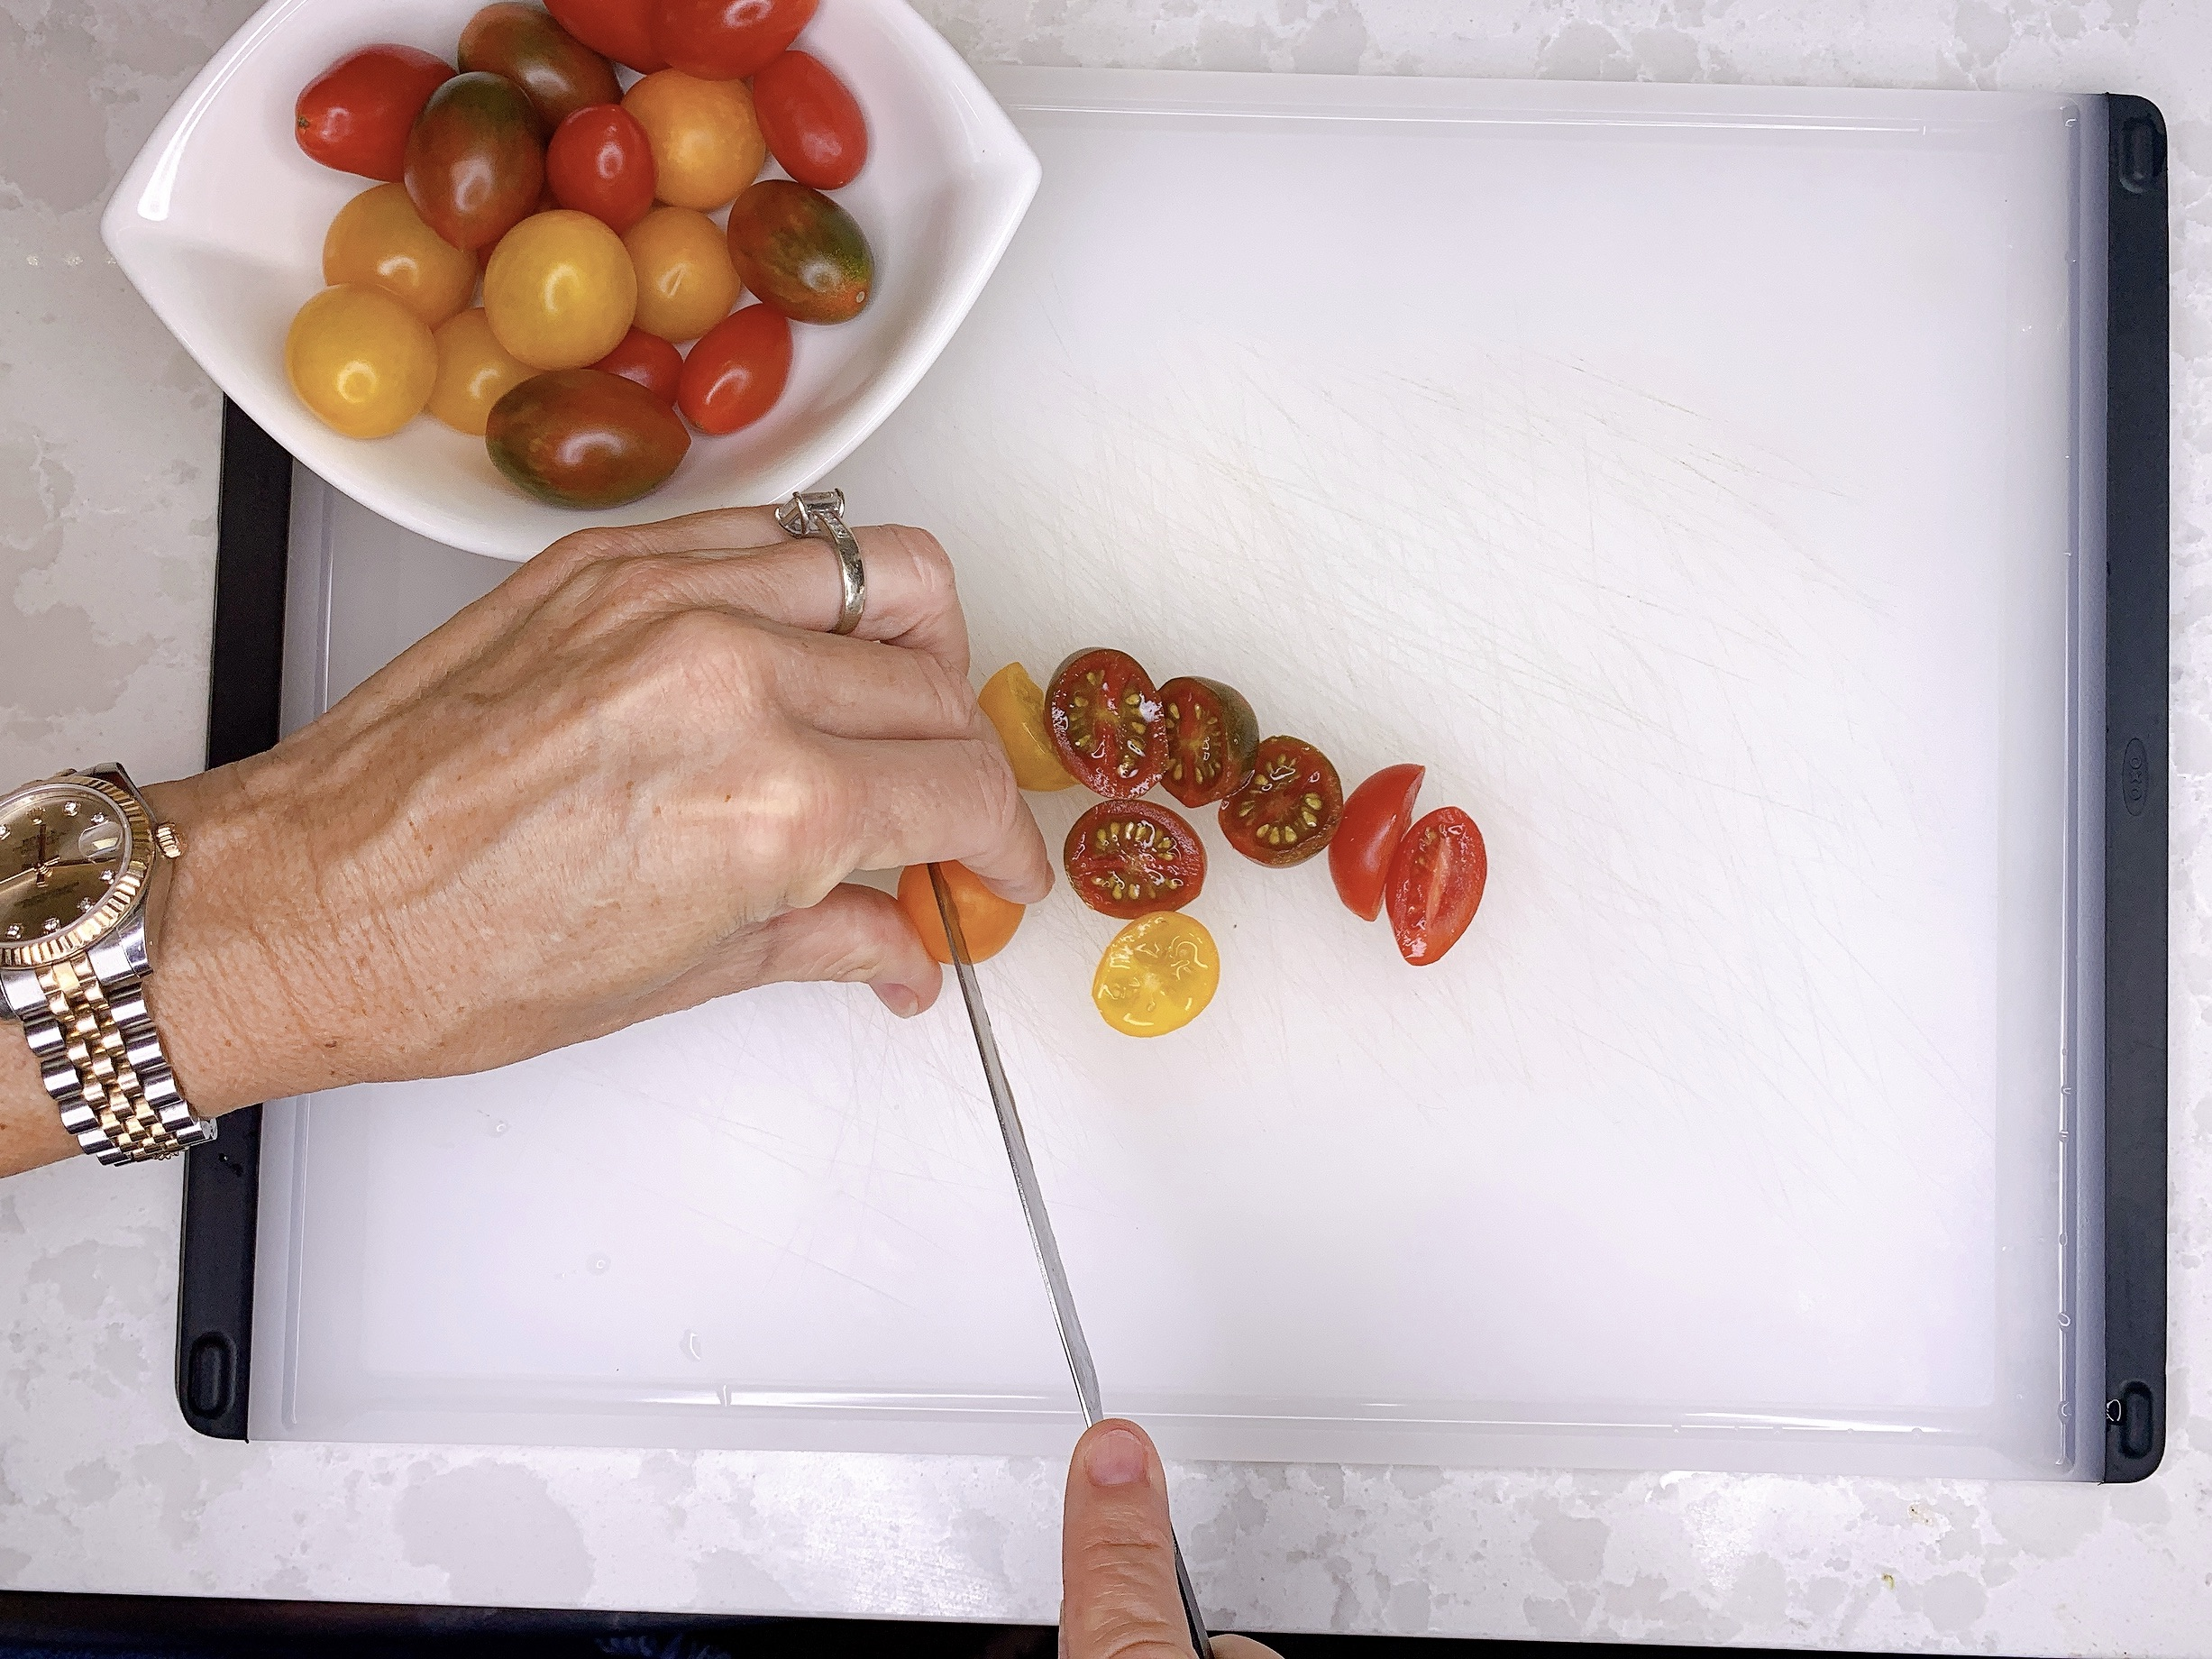 Woman's hands from above as she slices baby heirloom tomatoes in halves